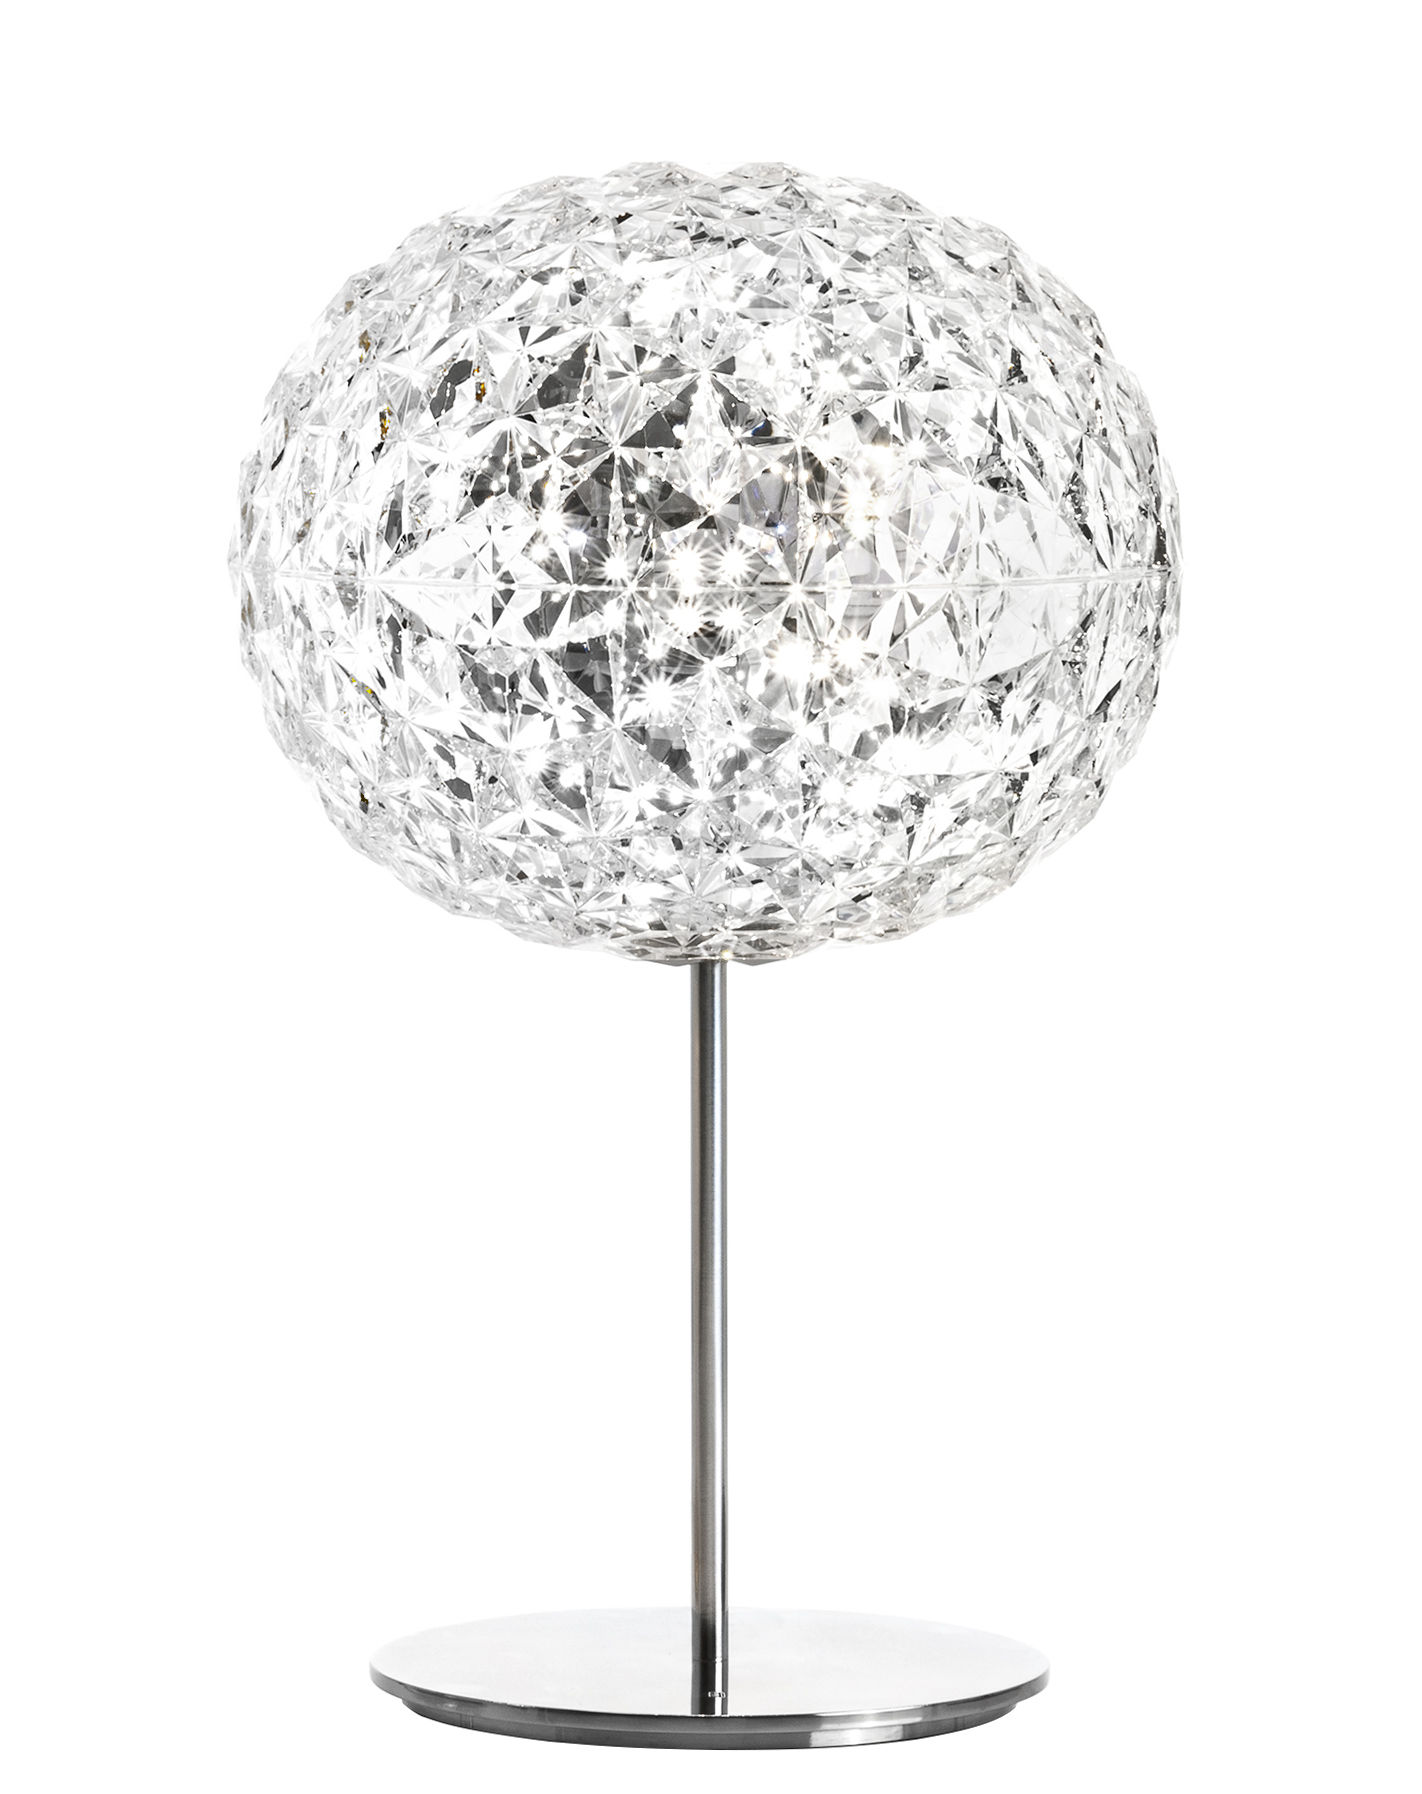 Lighting - Table Lamps - Planet Table lamp - LED - H 53 cm by Kartell - Crystal / Silver base - Aluminium, Thermoplastic technopolymer